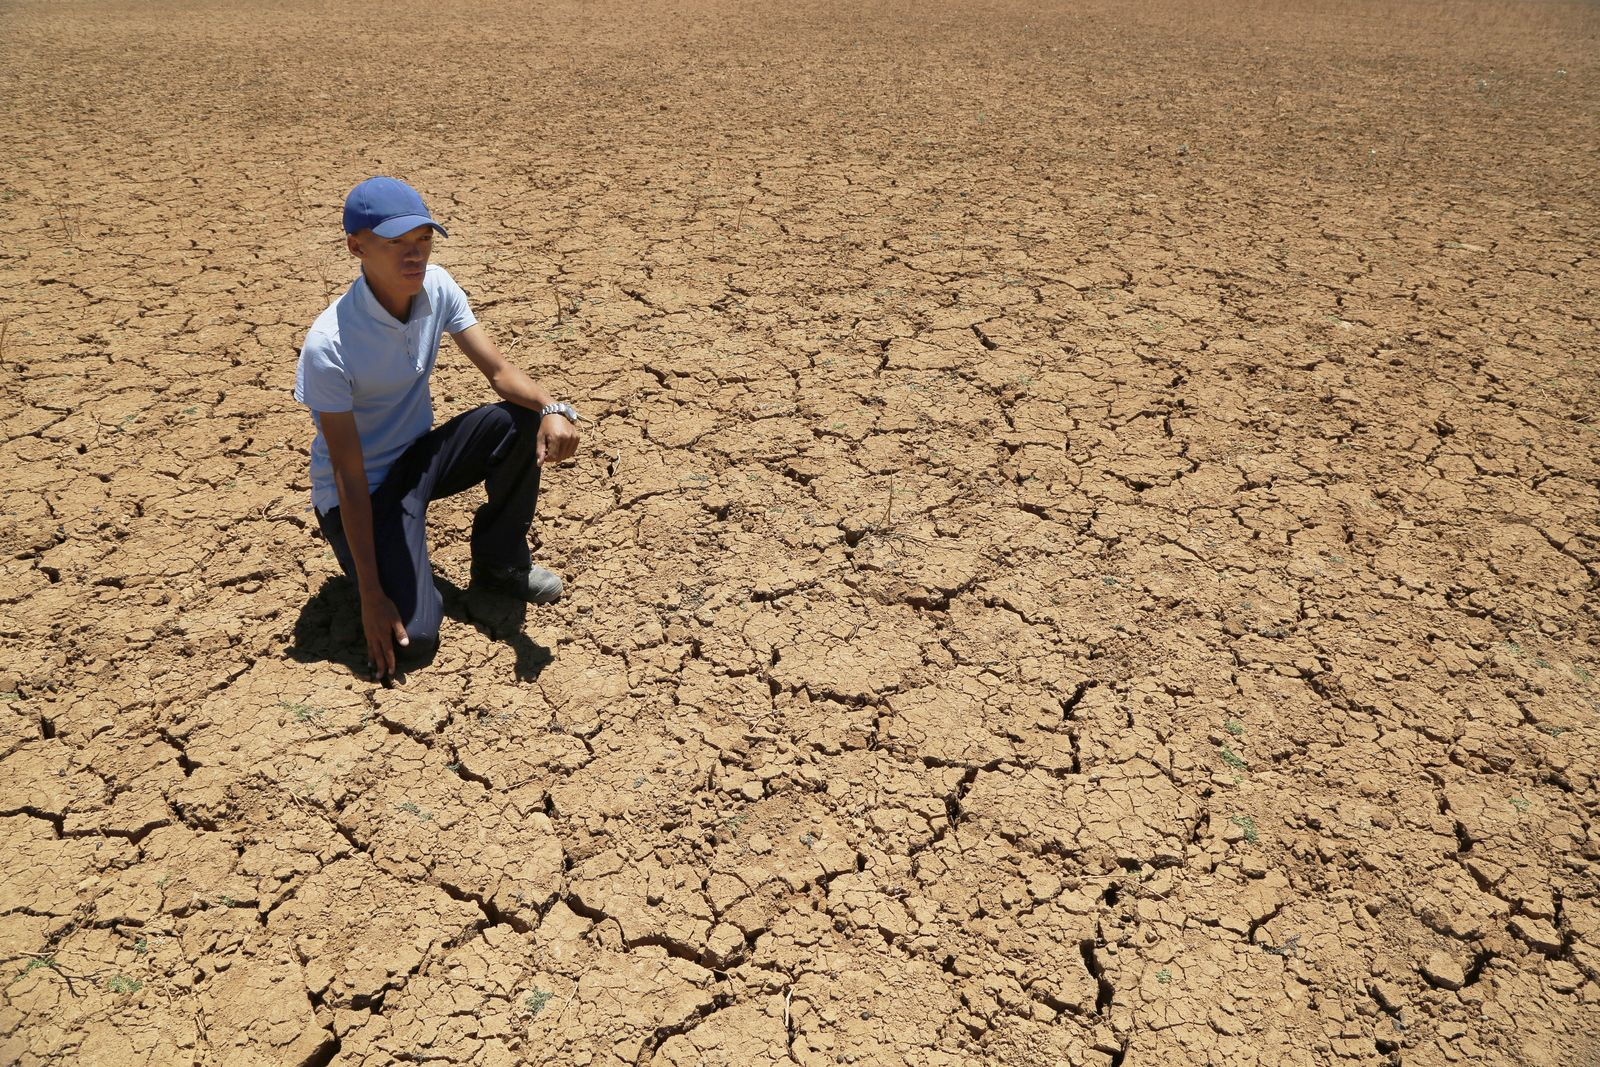 South Africa Deadly Drought